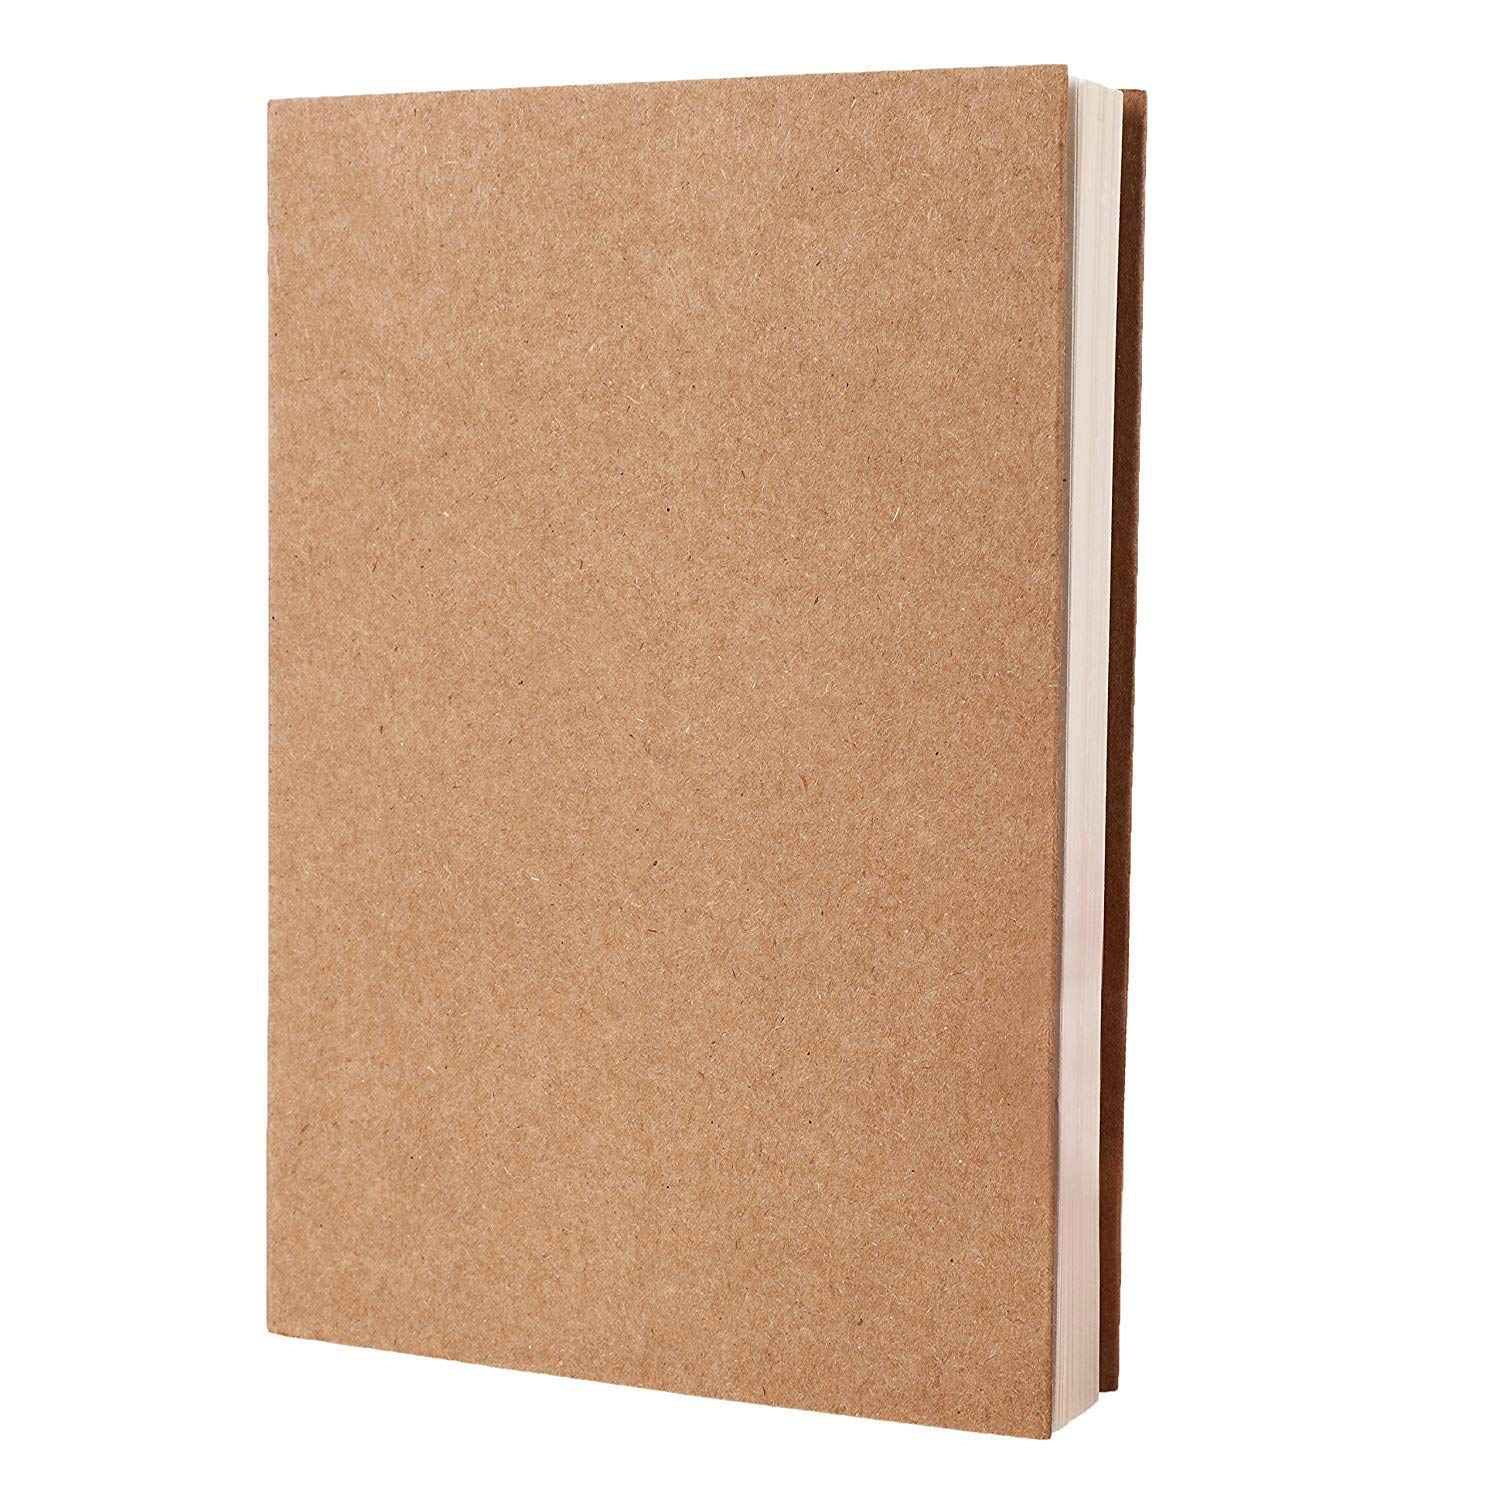 RIANCY Brown Paper Notebook Blank Kraft Cover Notebook Things To Do List Drawing Scrawl Notepad Travel Journal Sketchbook Diary Memo Book A5 (White Paper)